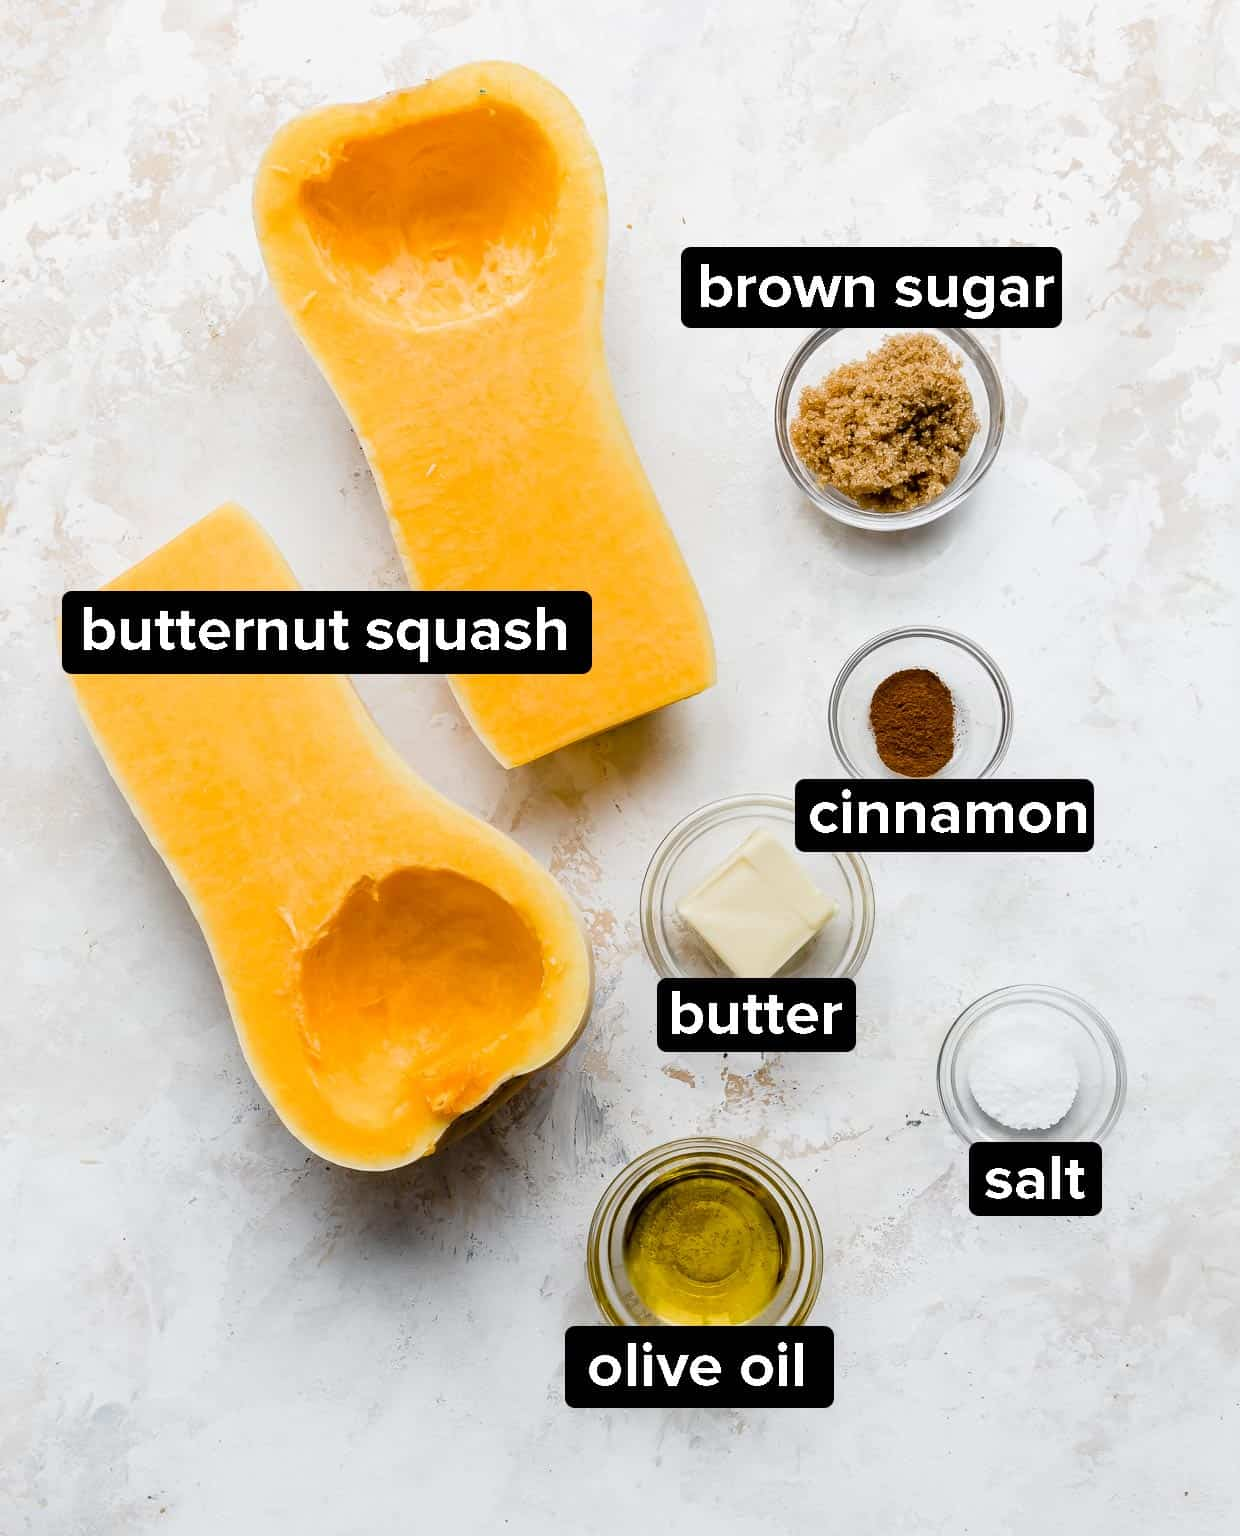 Ingredients used to make cinnamon roasted butternut squash on a white textured background.